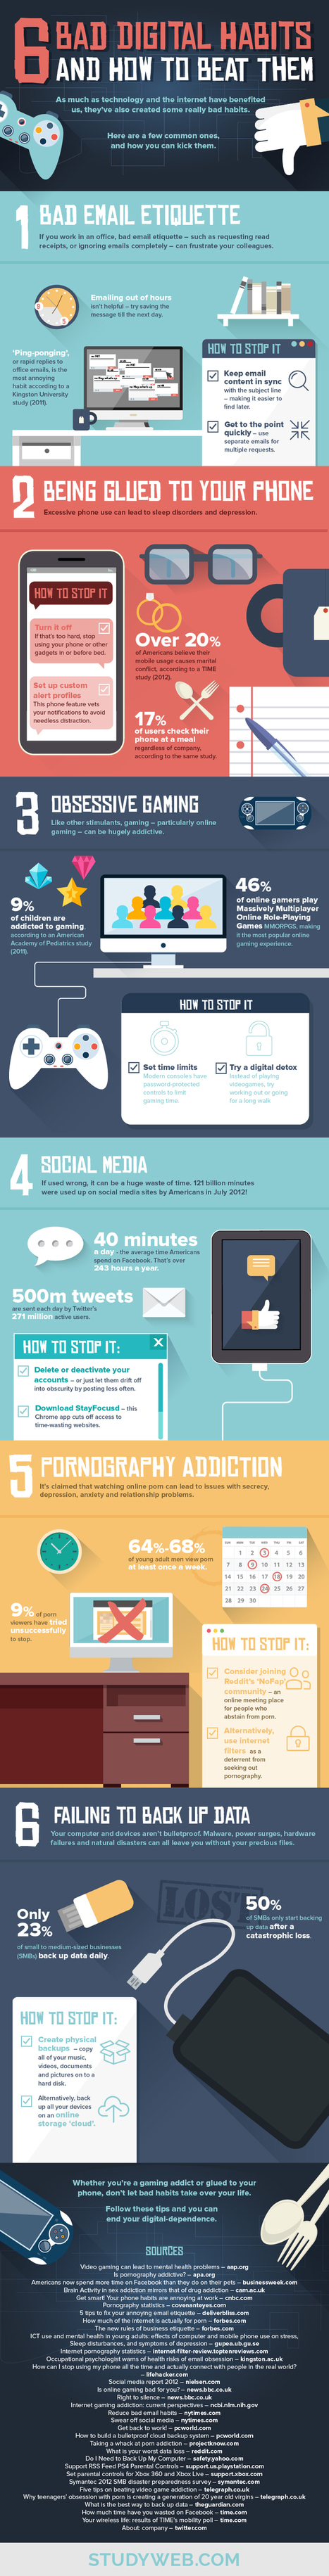 6 Bad Digital Habits and How to Beat Them Infographic | Uppdrag : Skolbibliotek | Scoop.it